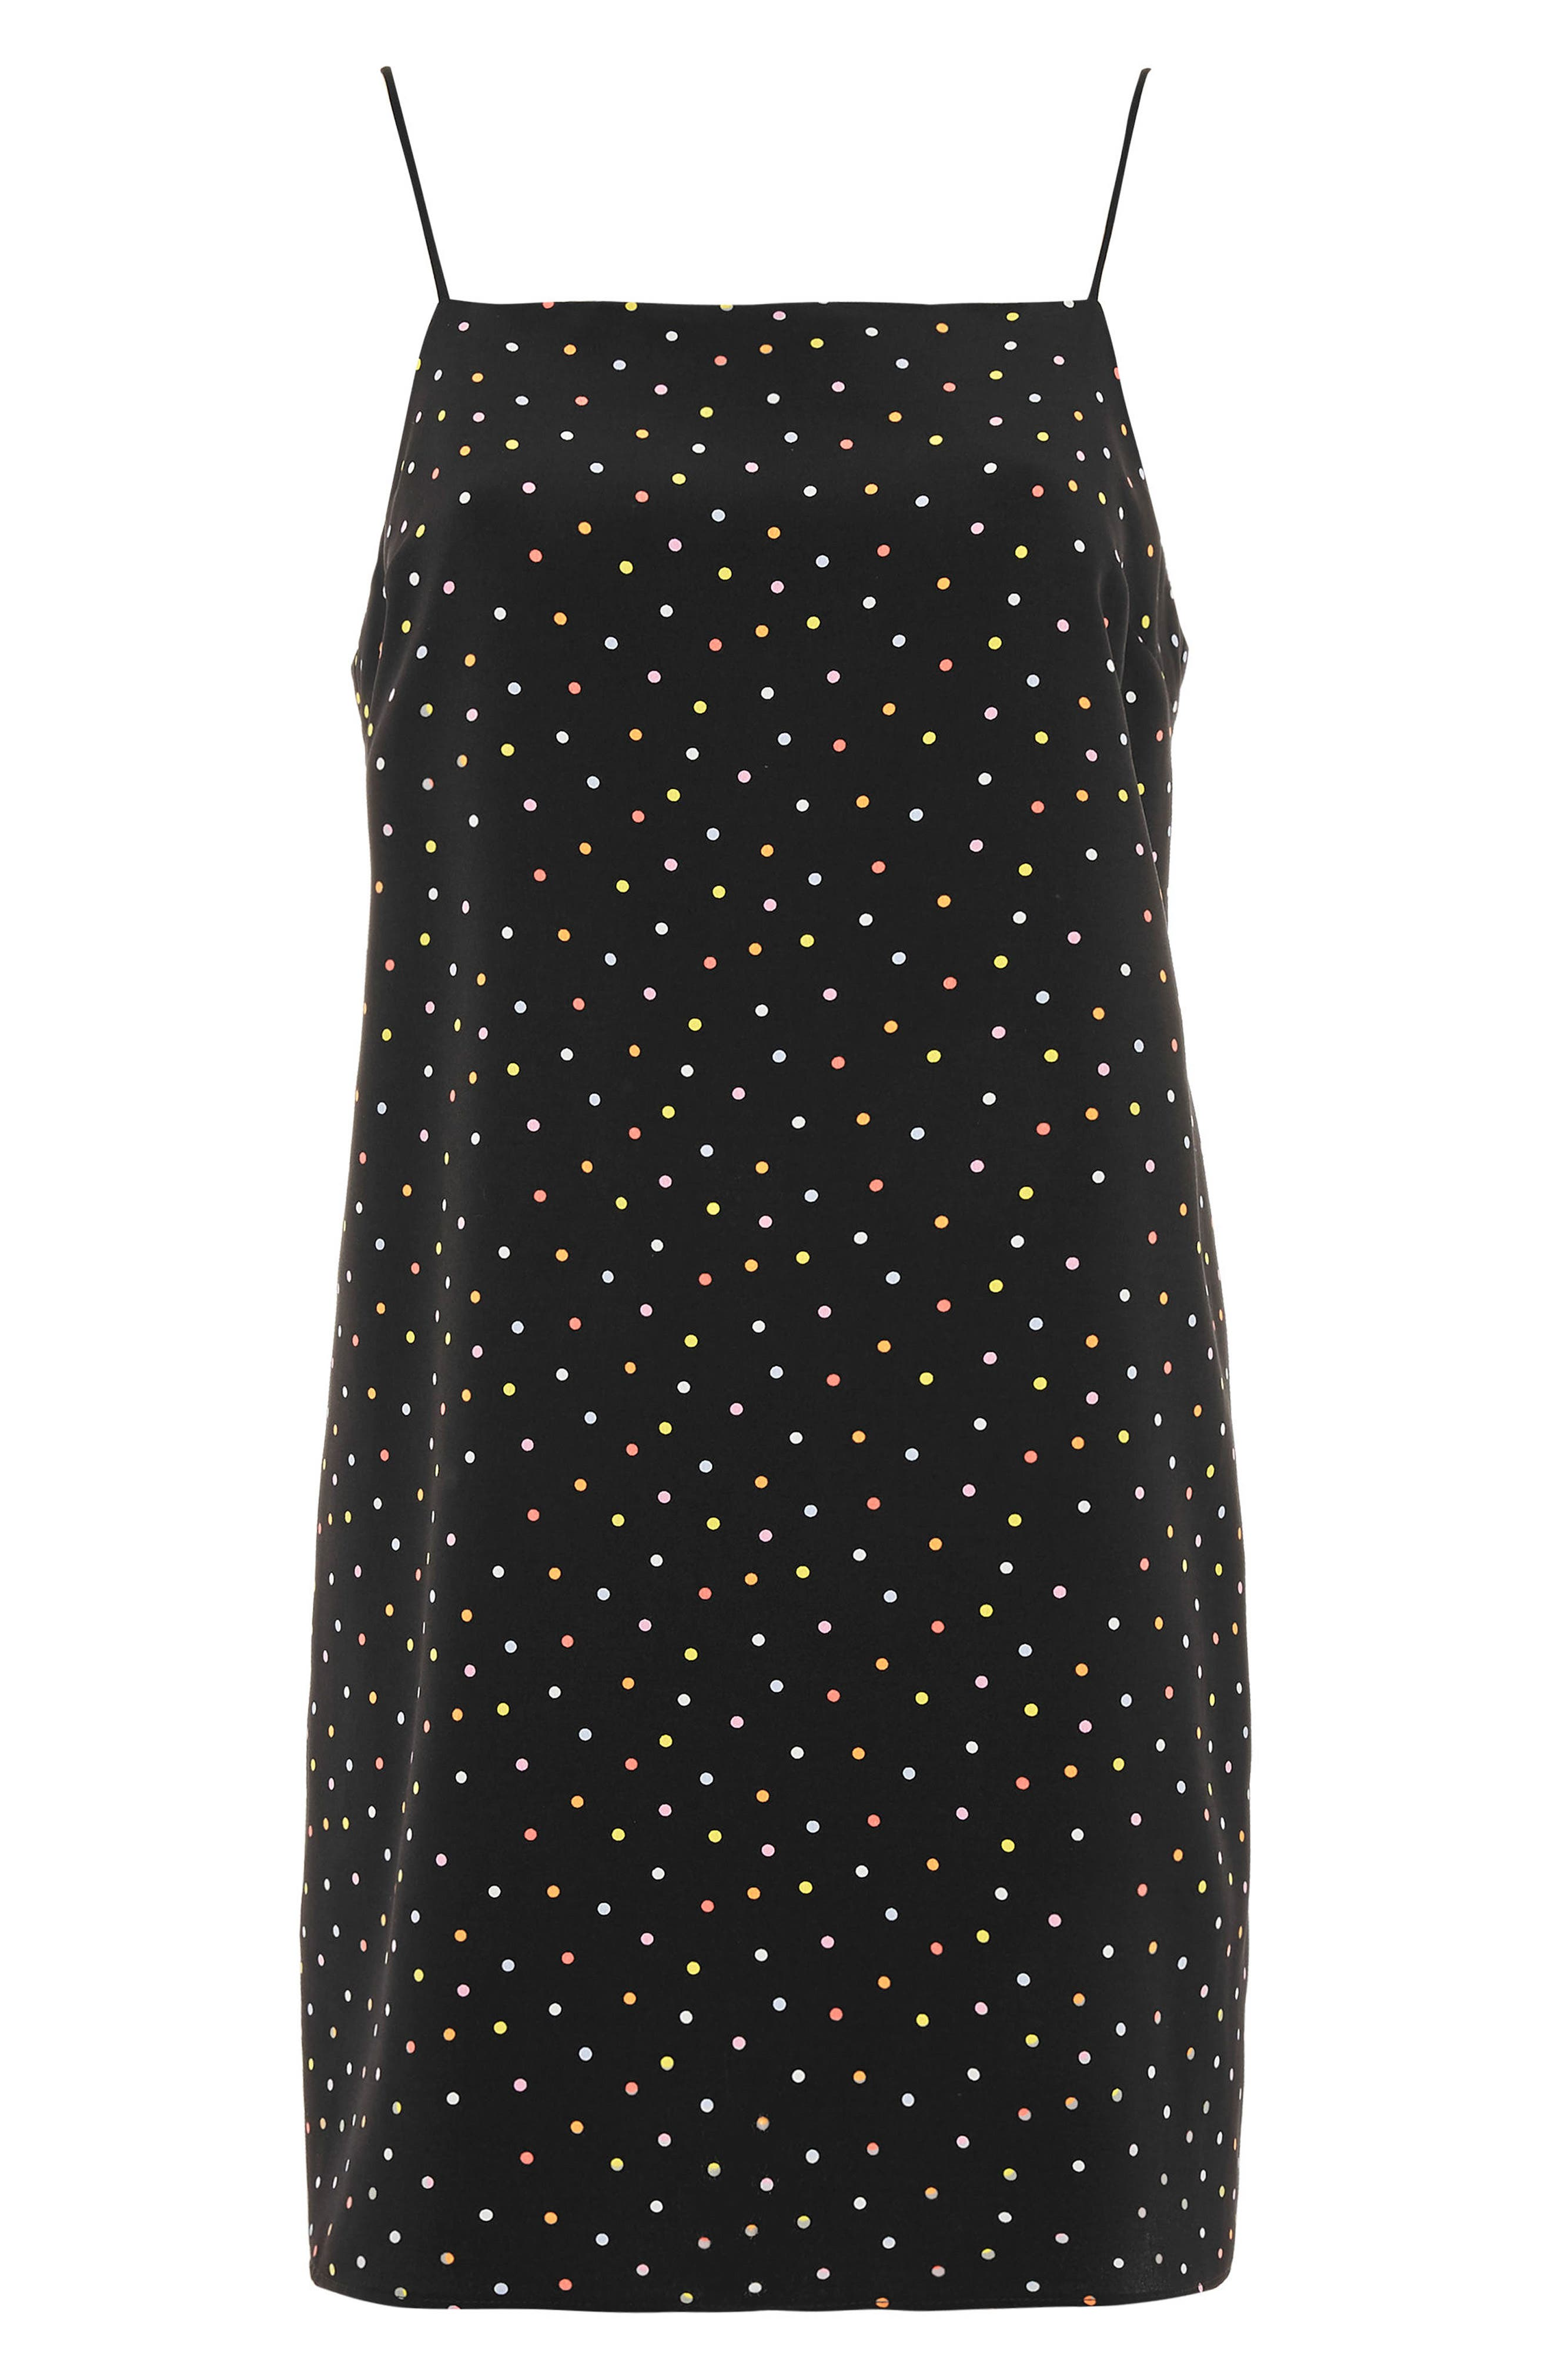 Square Neck Polka Dot Dress,                             Alternate thumbnail 4, color,                             001